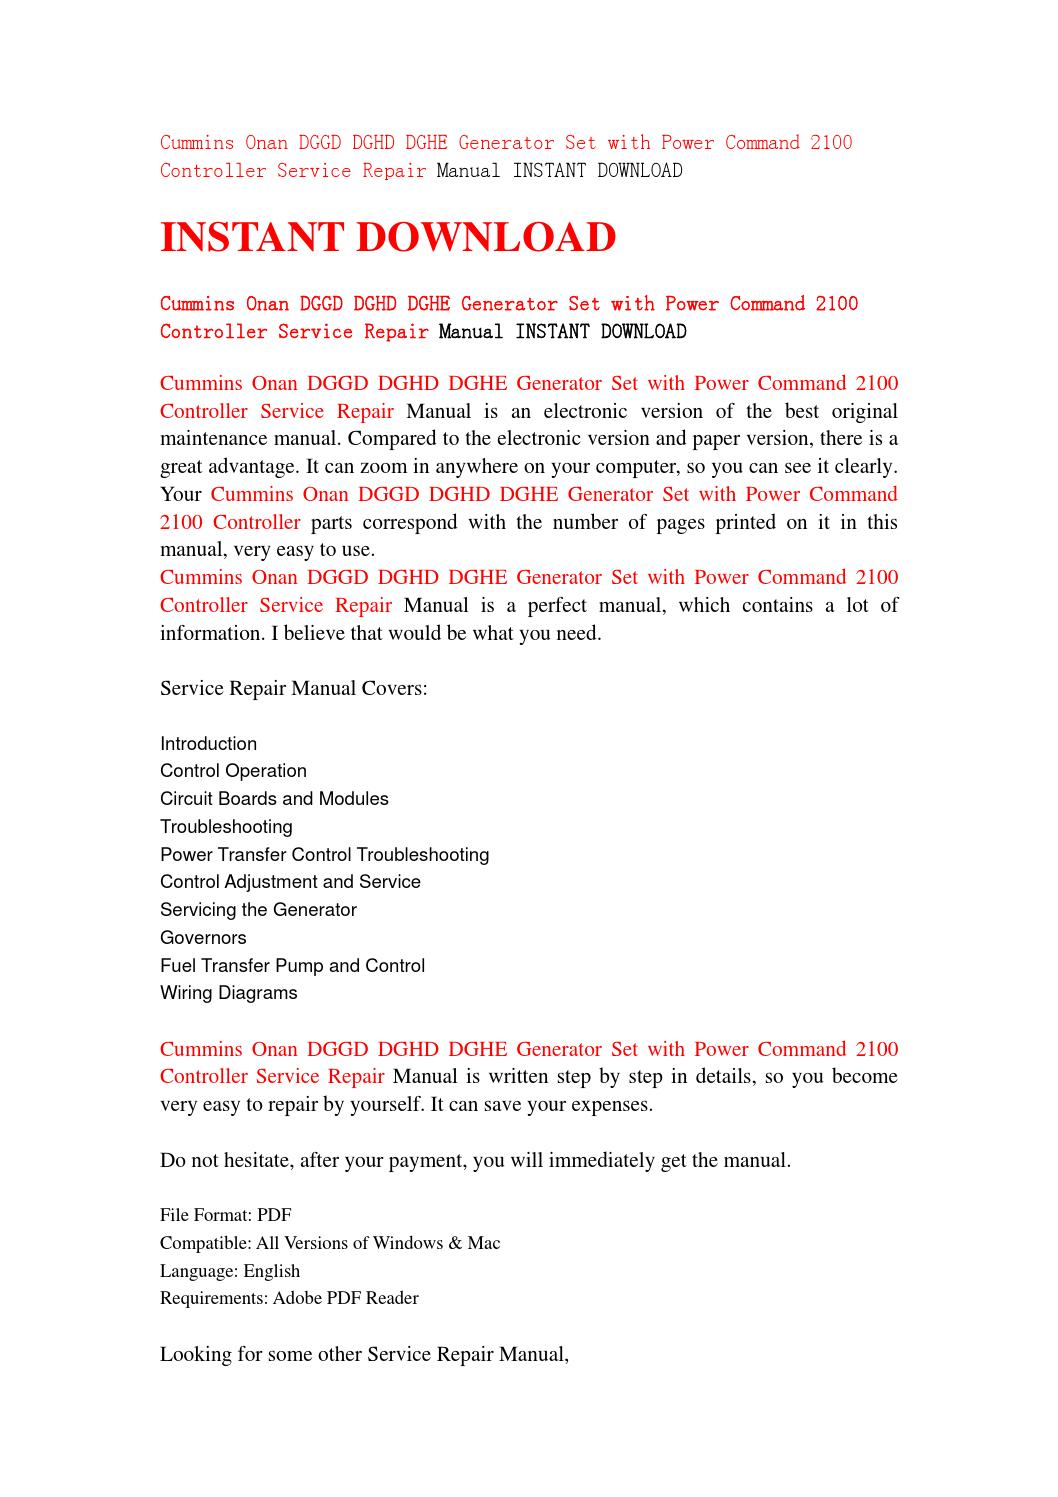 Cummins Onan Dggd Dghd Dghe Generator Set With Power Command 2100 Control Wiring Basics Pdf Controller Service Repair Manual I By Kjsefmme56 Issuu